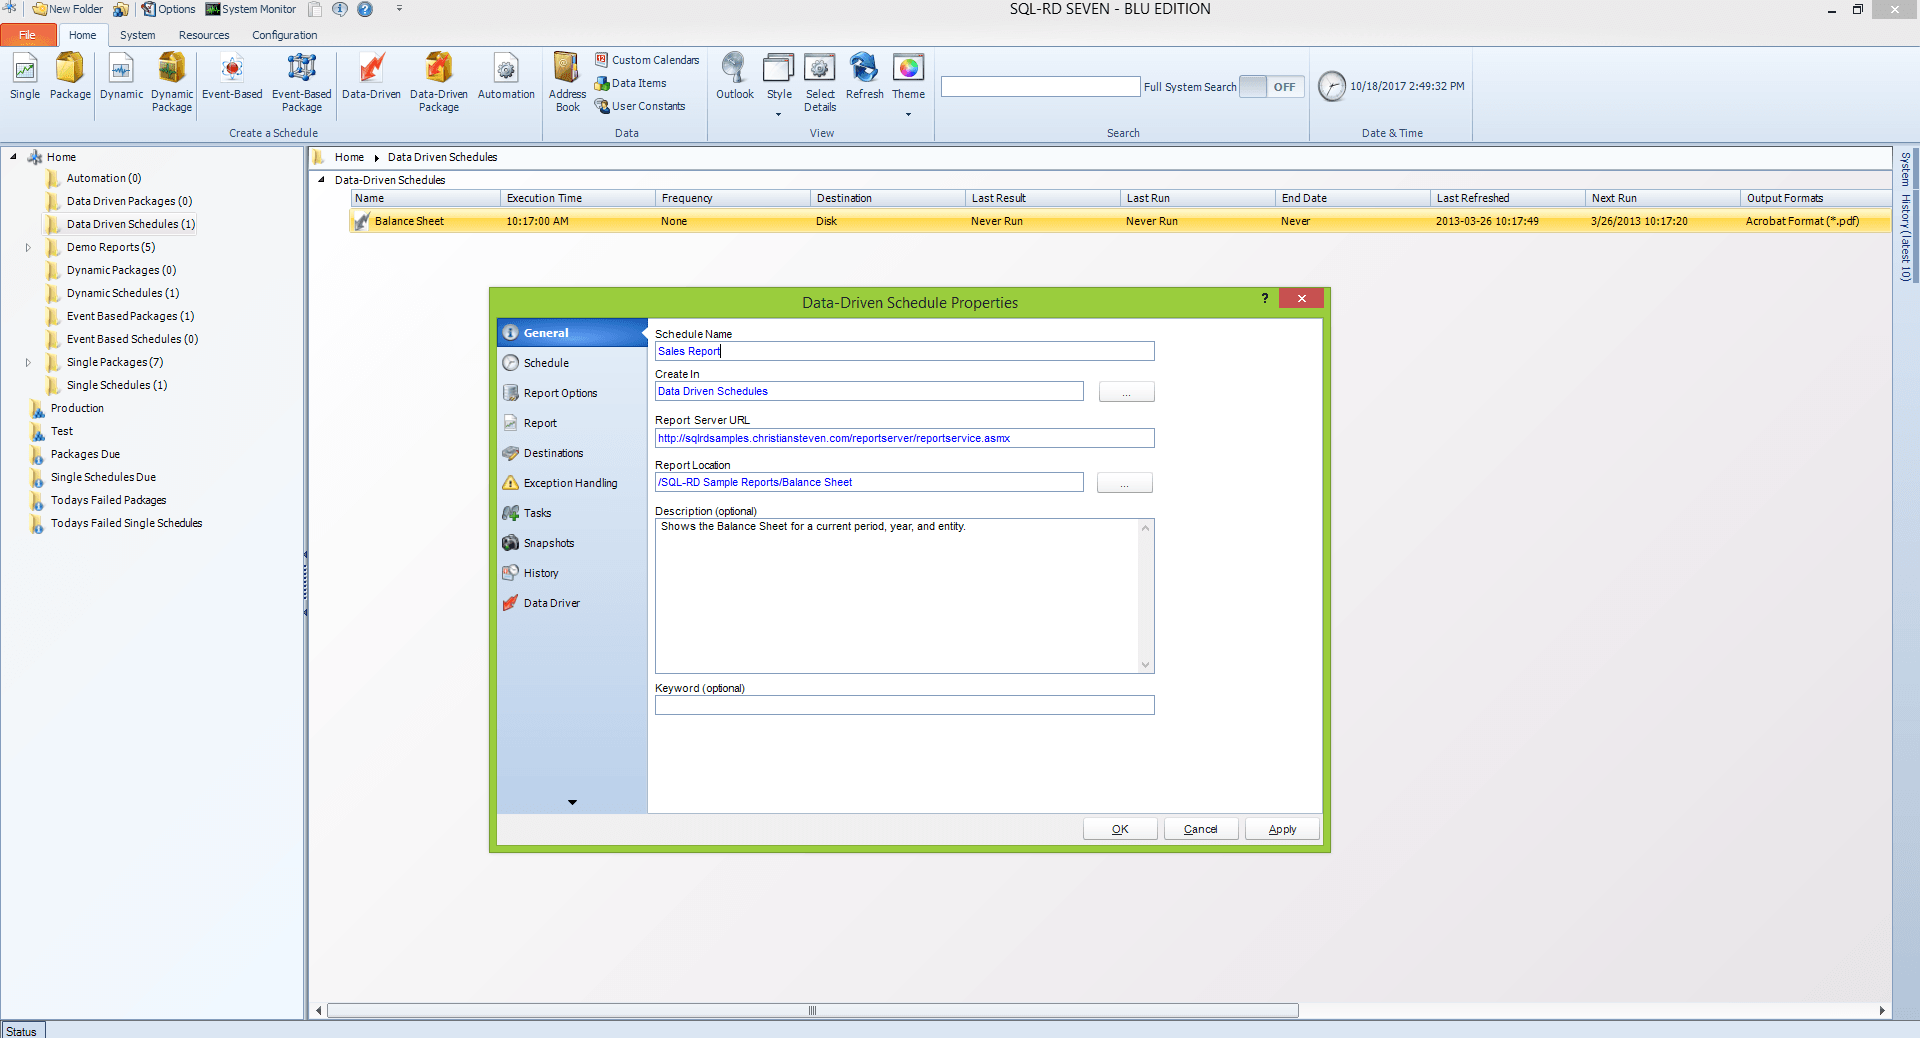 SQL-RD Release 20171018 Now Available